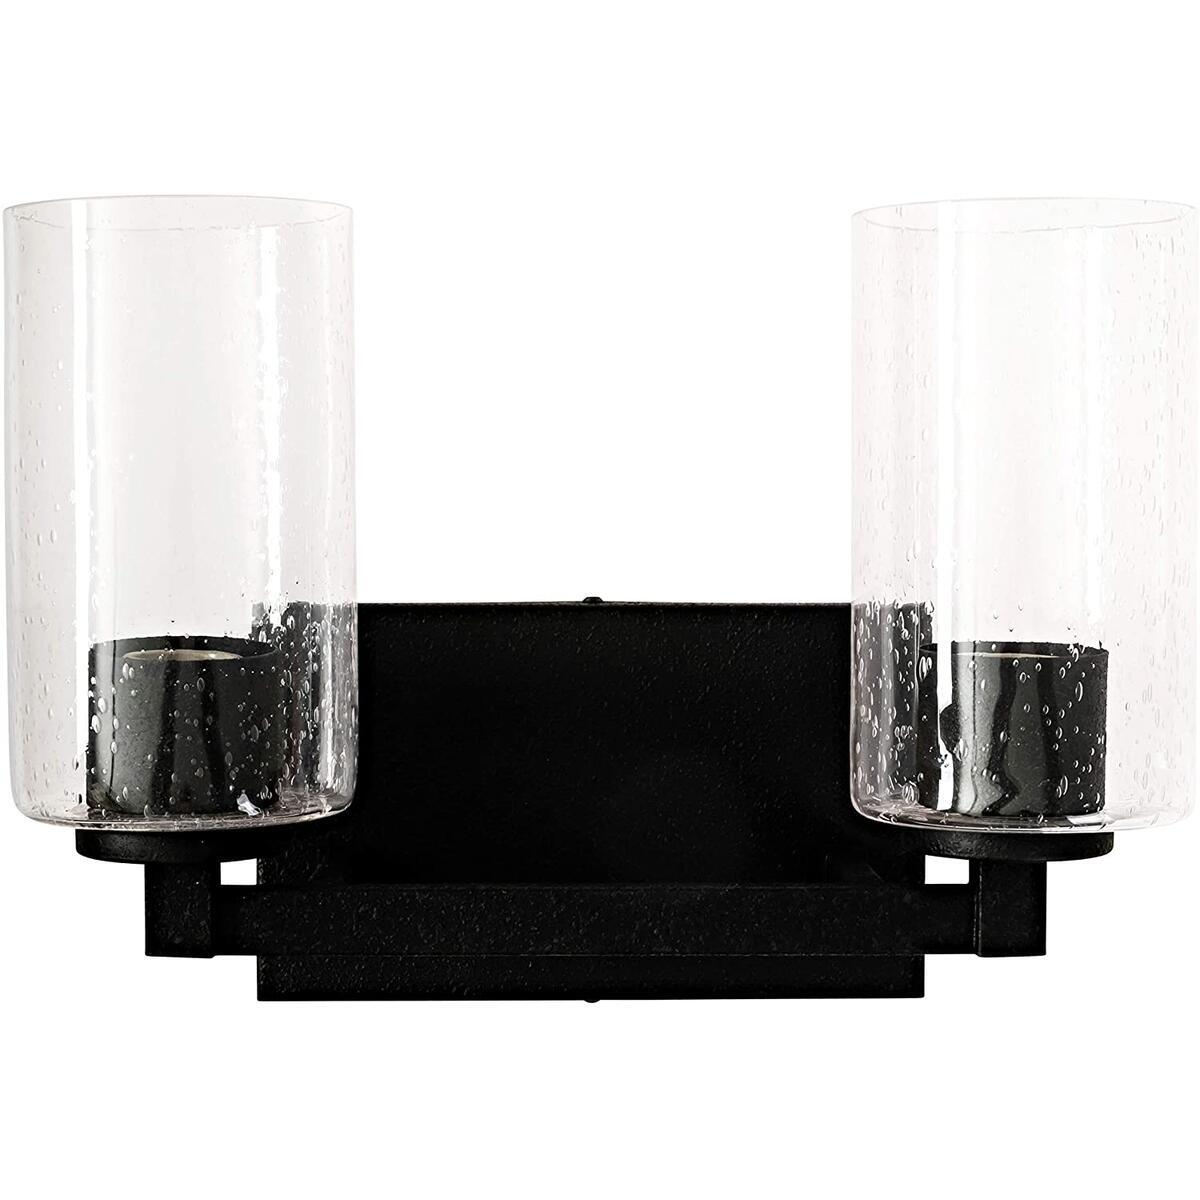 Classic 2 Light Vanity Wall Light, 120V,100W, E26 Bulb Base in Black Iron Finish with Clear Seeded Glass for Bathrooms, Hallways and Living Areas